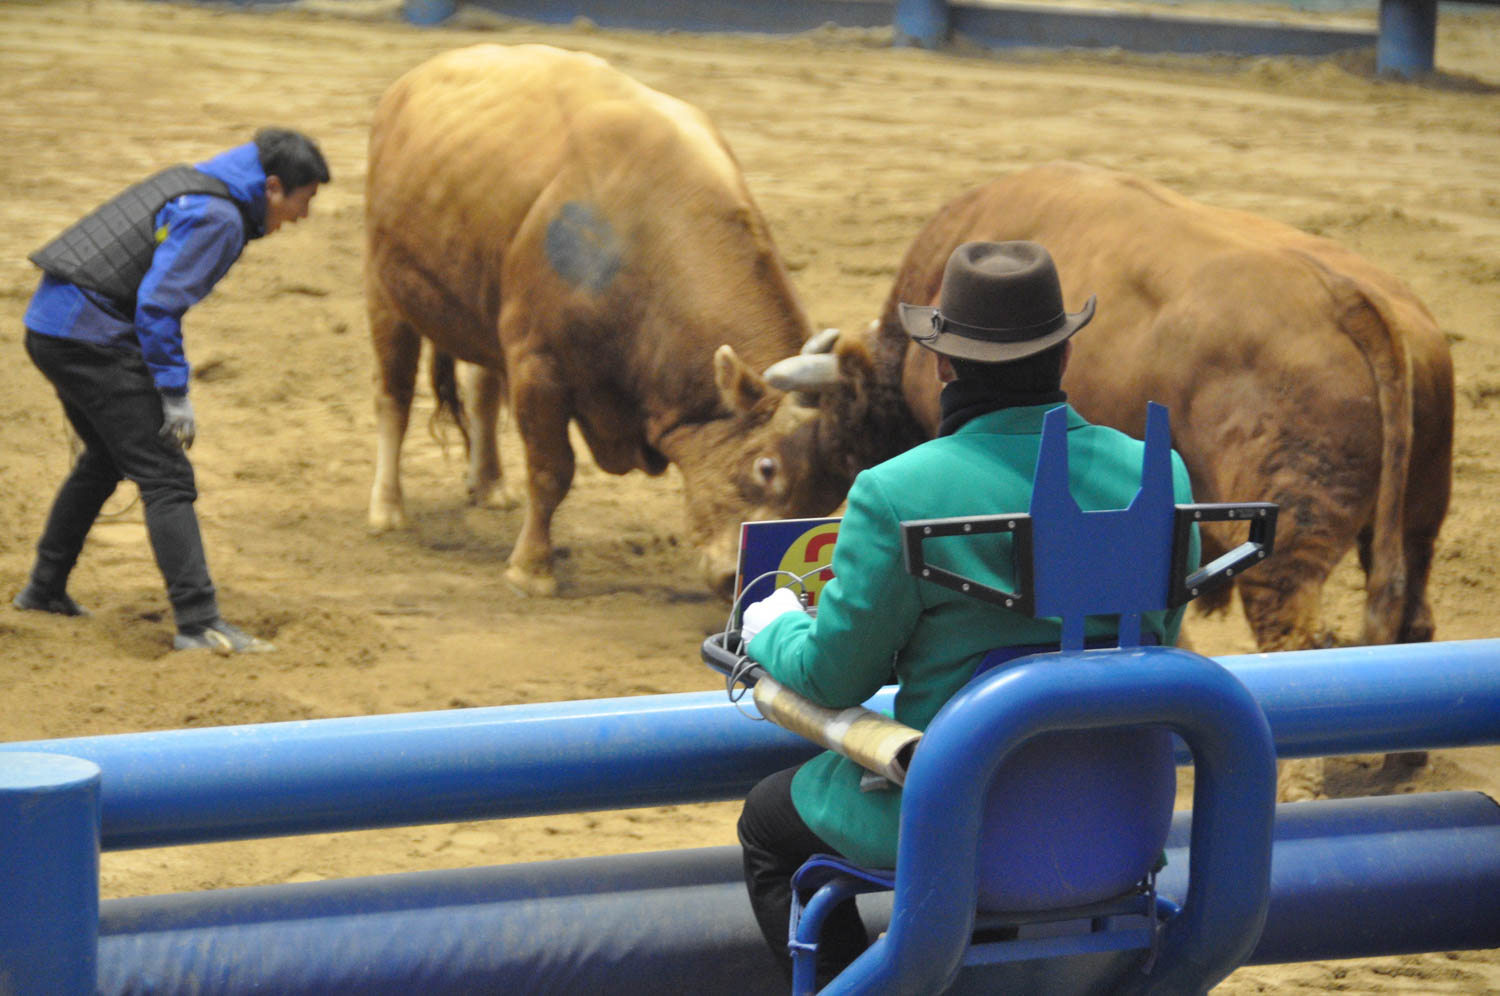 """There were several """"judges"""" observing the bullfights; though it didn't really seem like they did much."""